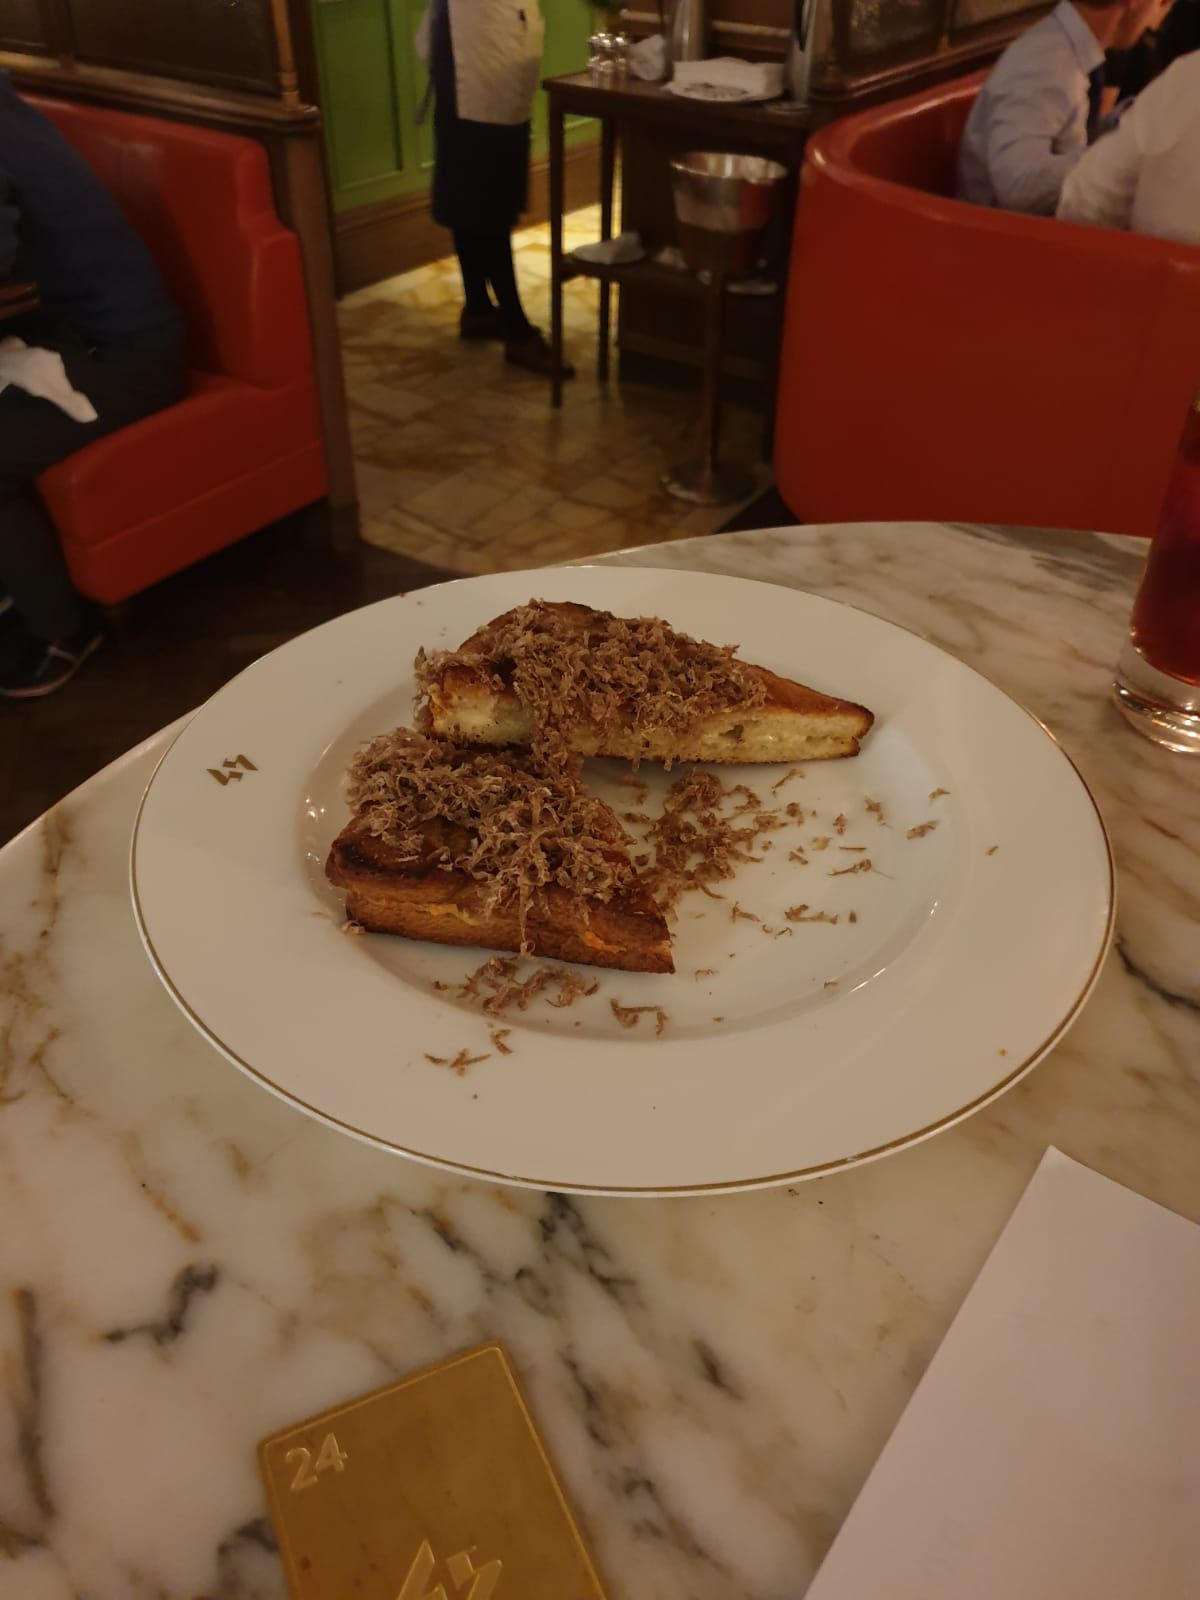 The famous truffled cheese toastie at 45 Jermyn Street at Fortnum and Mason on Piccadilly